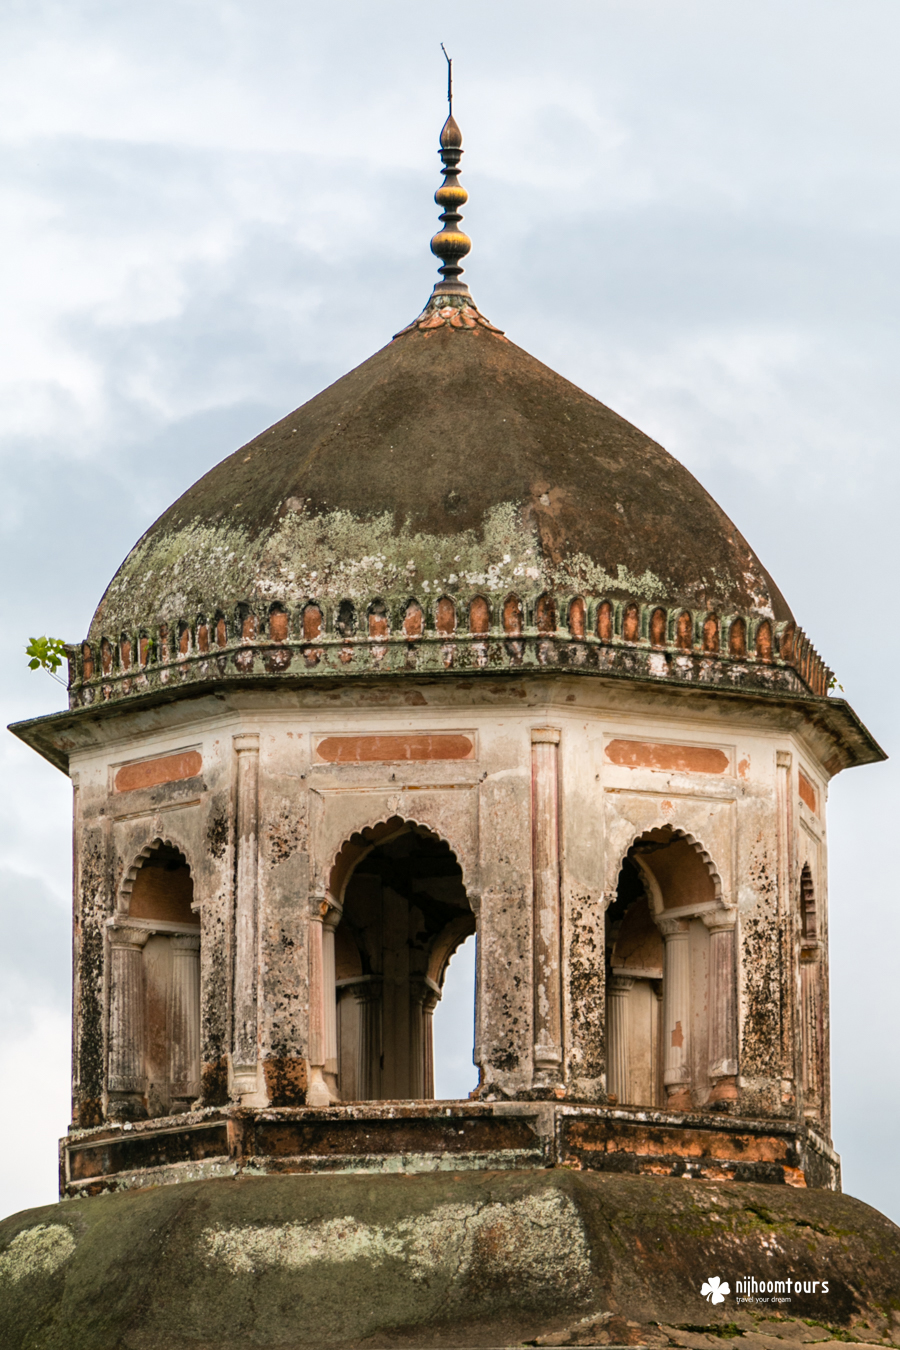 The single tapering tower of Jagannath temple in Puthia, Bangladesh.